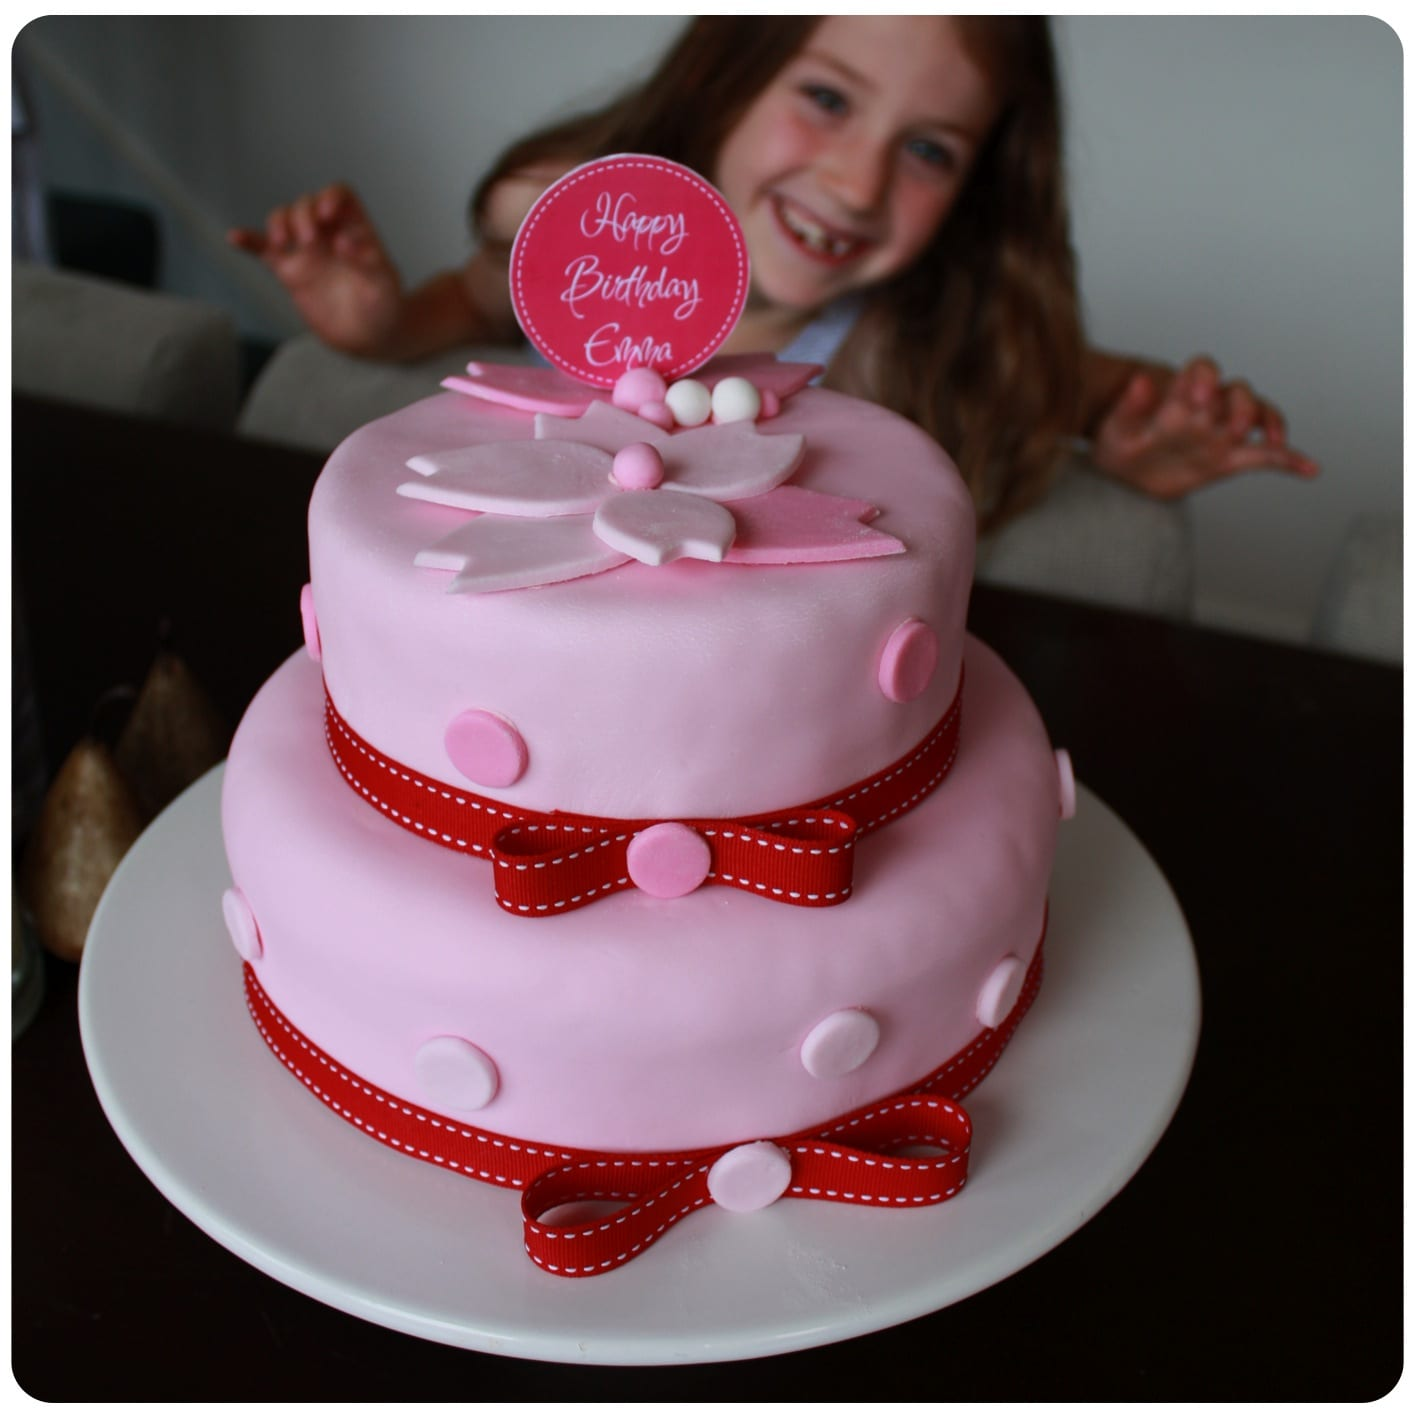 Cake Design 2 Layer Dmost for